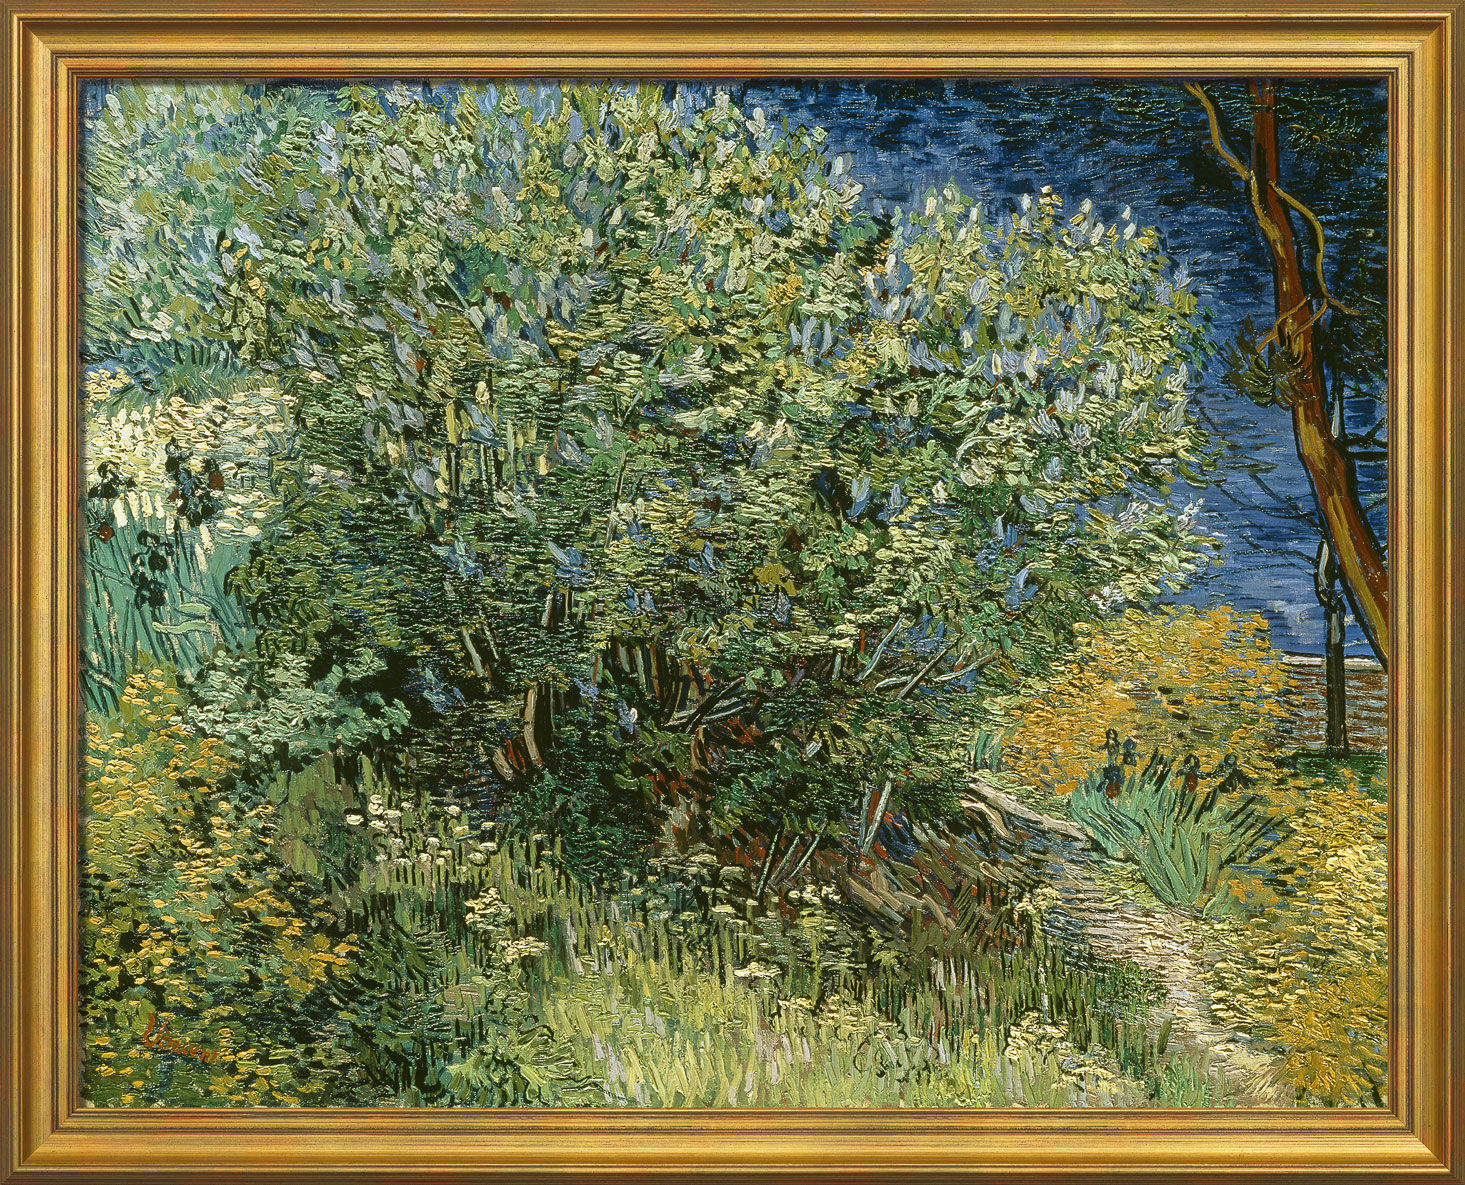 """Painting """"Lilac bush"""" (1889) in museum framing"""